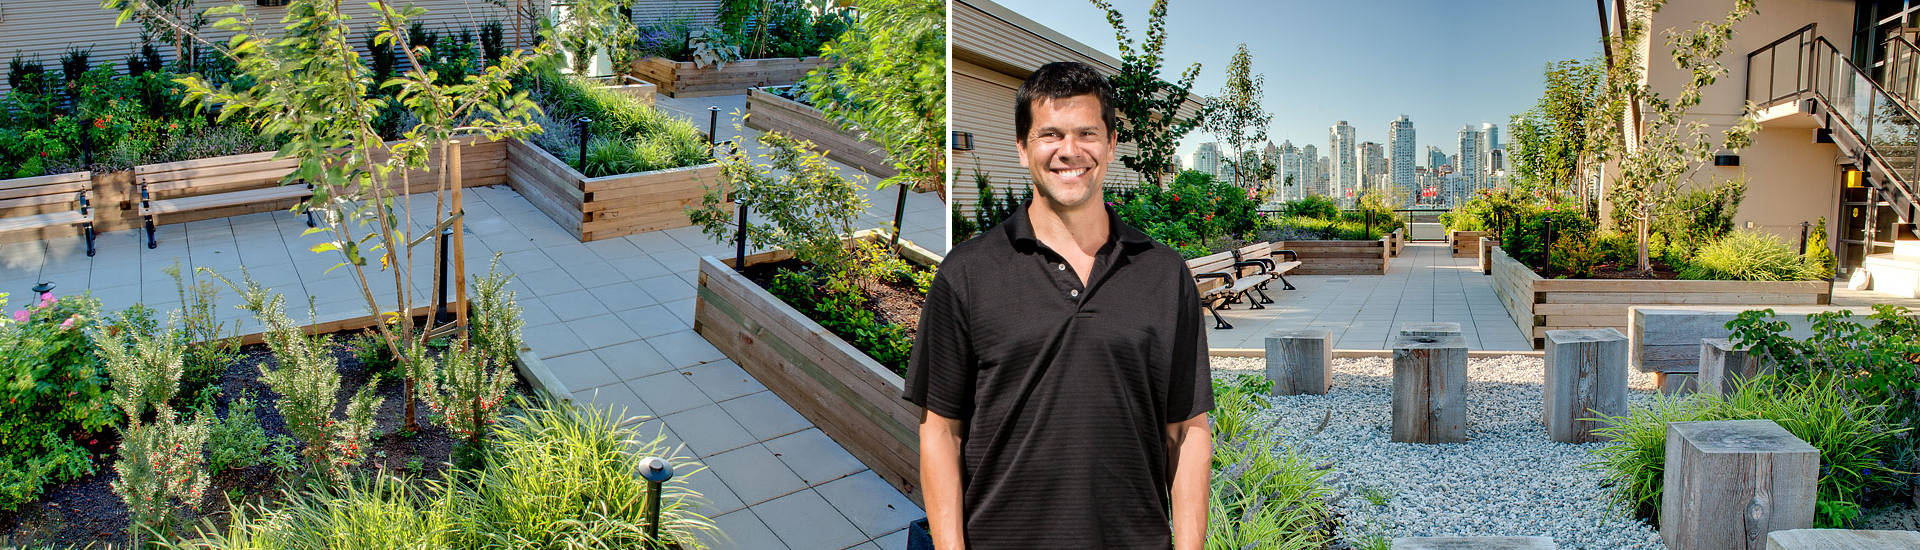 Houston Landscapes - Denbow Landscaper profile